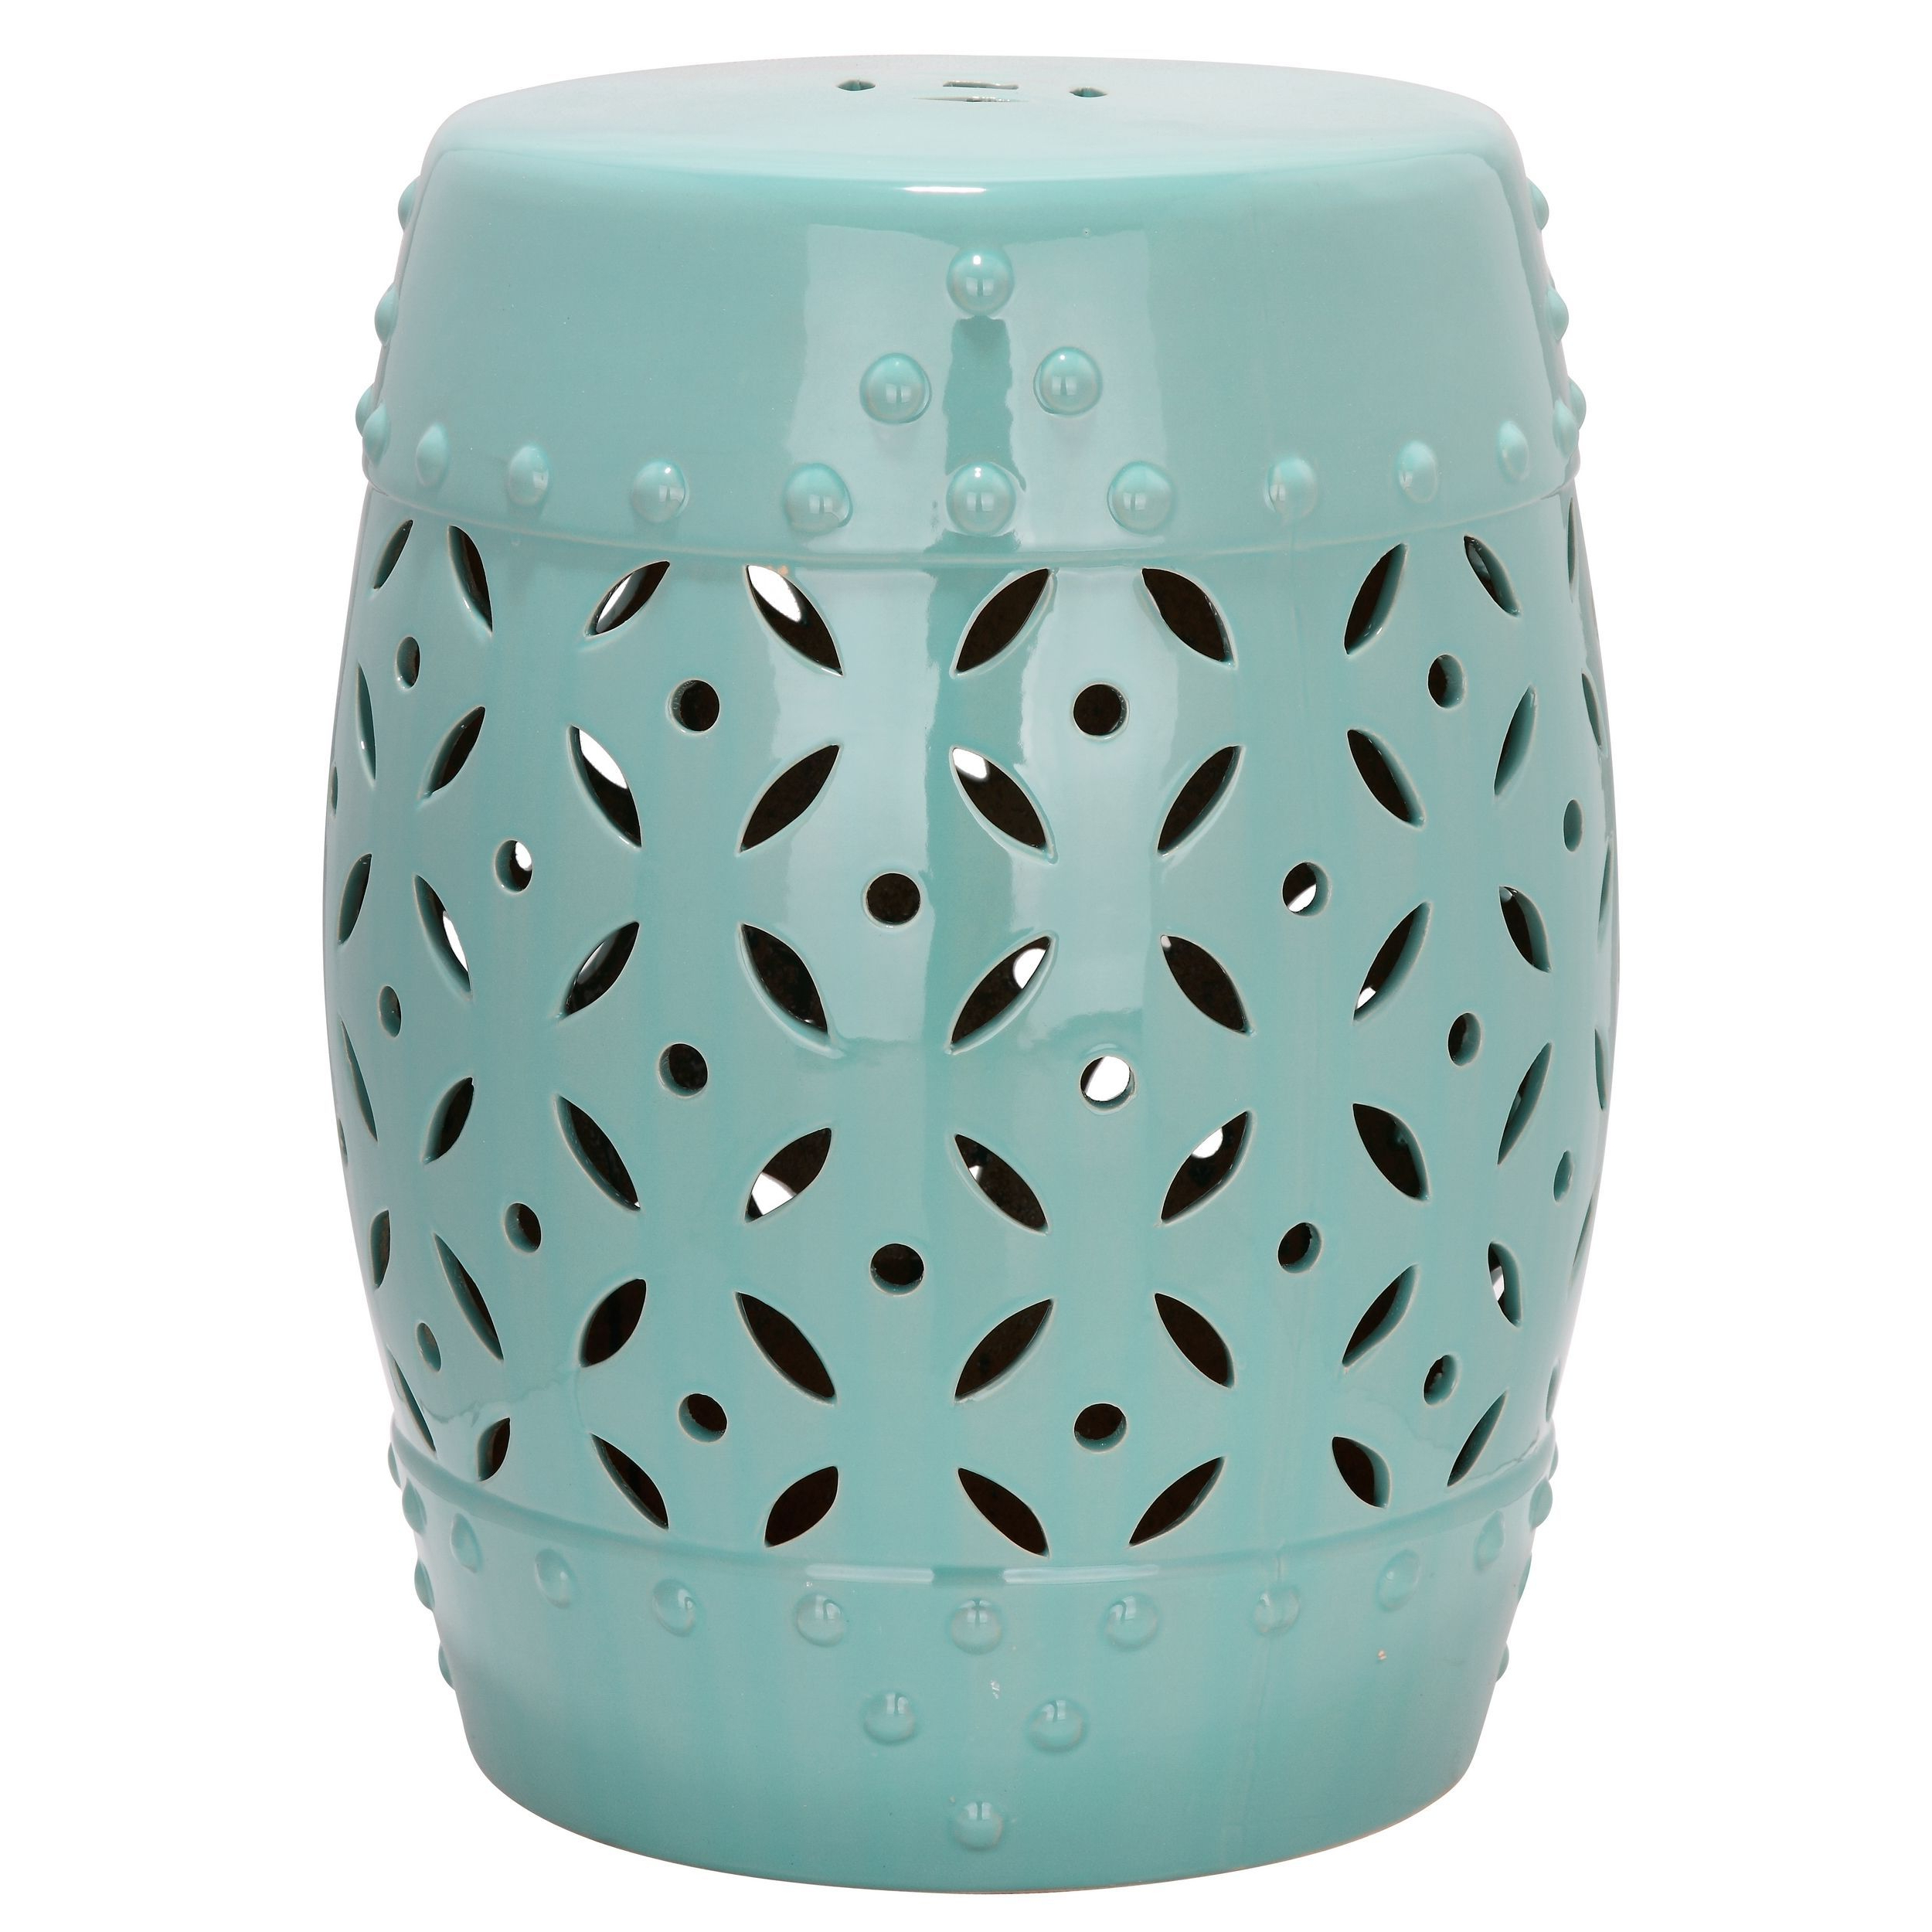 Well Known Keswick Ceramic Garden Stools Throughout Overstock: Online Shopping – Bedding, Furniture (View 10 of 30)